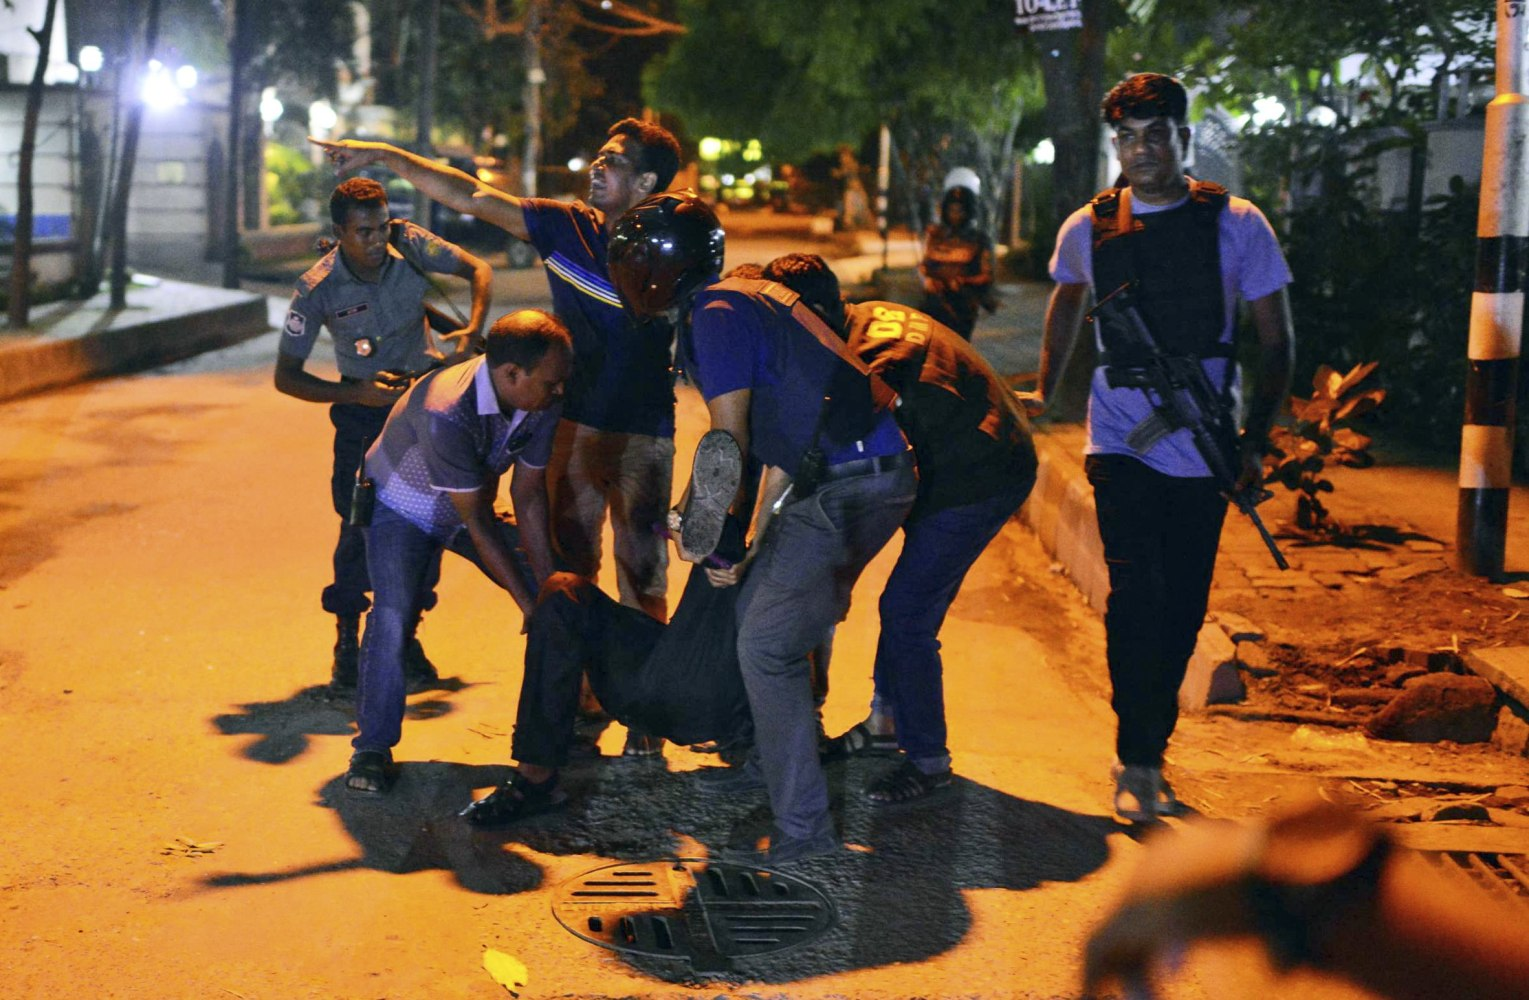 Who Are American People >> Bangladesh Attack: U.S. Citizen Among 20 Foreigners Killed in Dhaka Restaurant - NBC News